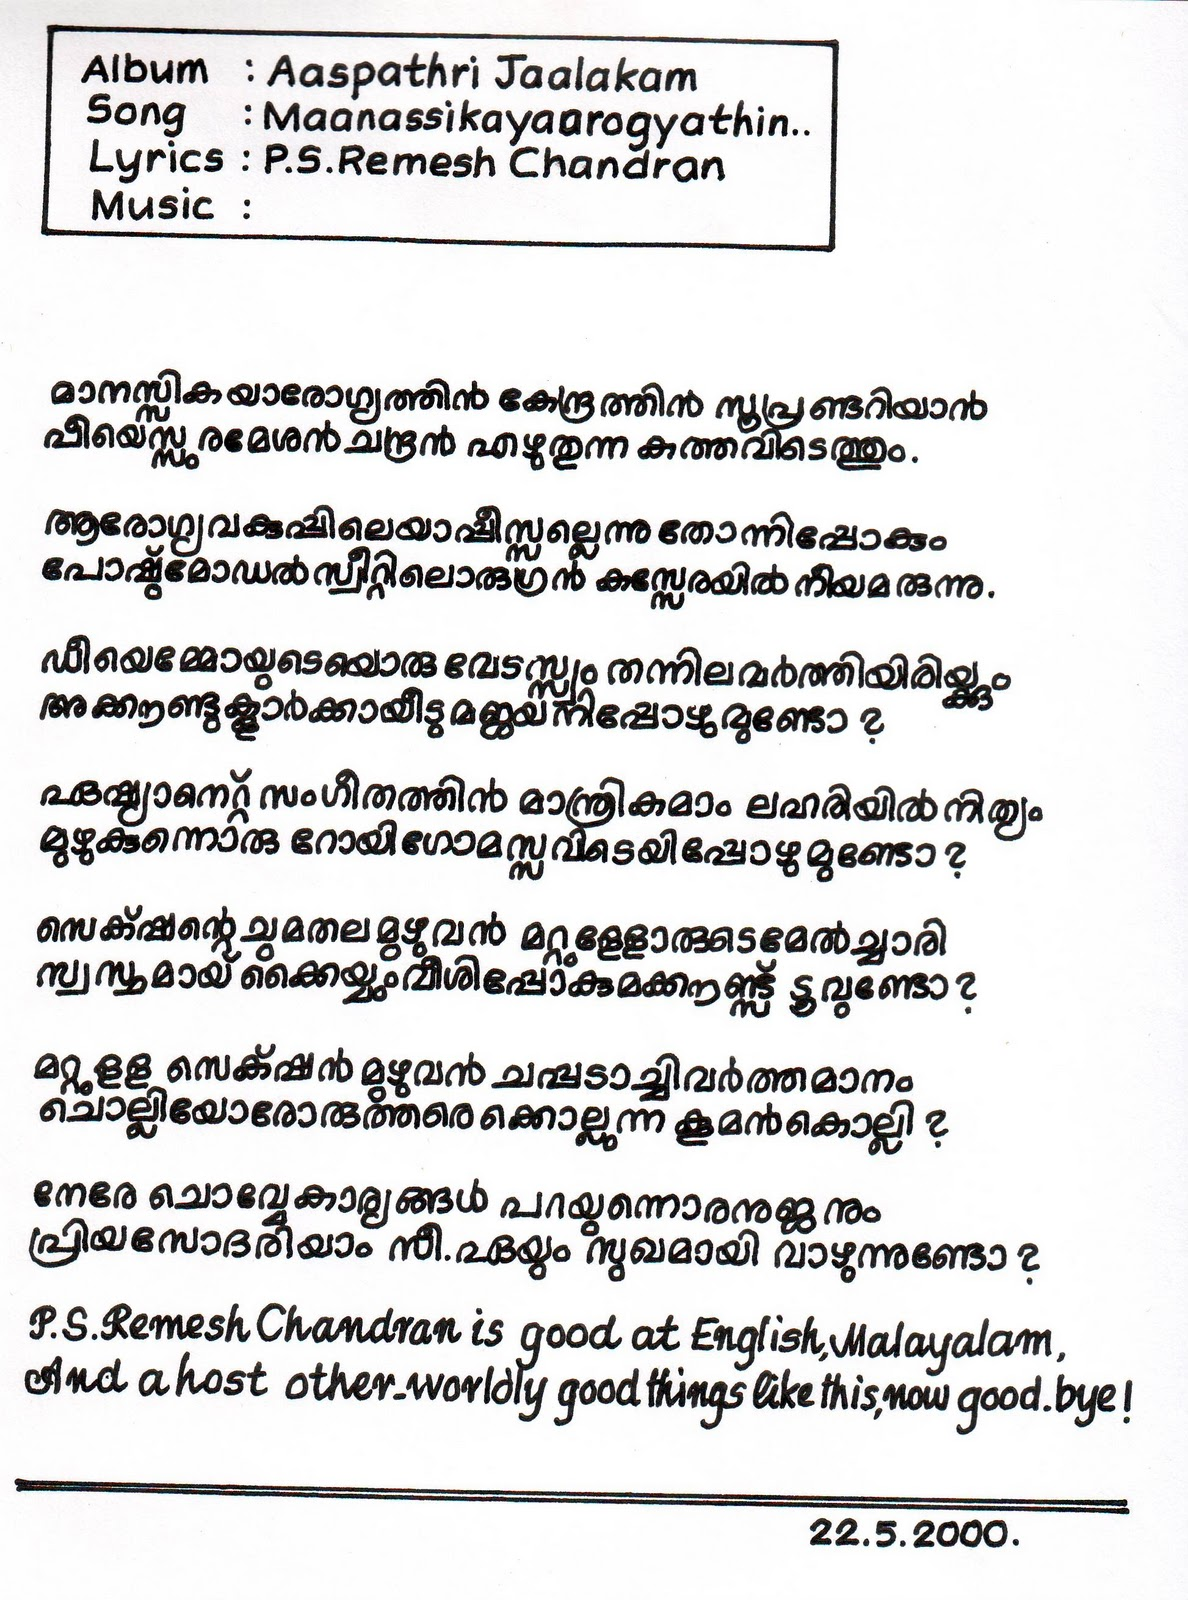 How To Make A Thesis Statement For An Essay  Meaning Of Essay In Malayalam English Composition Essay Examples also Short Essays In English Meaning Of Essay In Malayalam  Meaning Of Dissertation In Malayalam  How To Write A Good Thesis Statement For An Essay